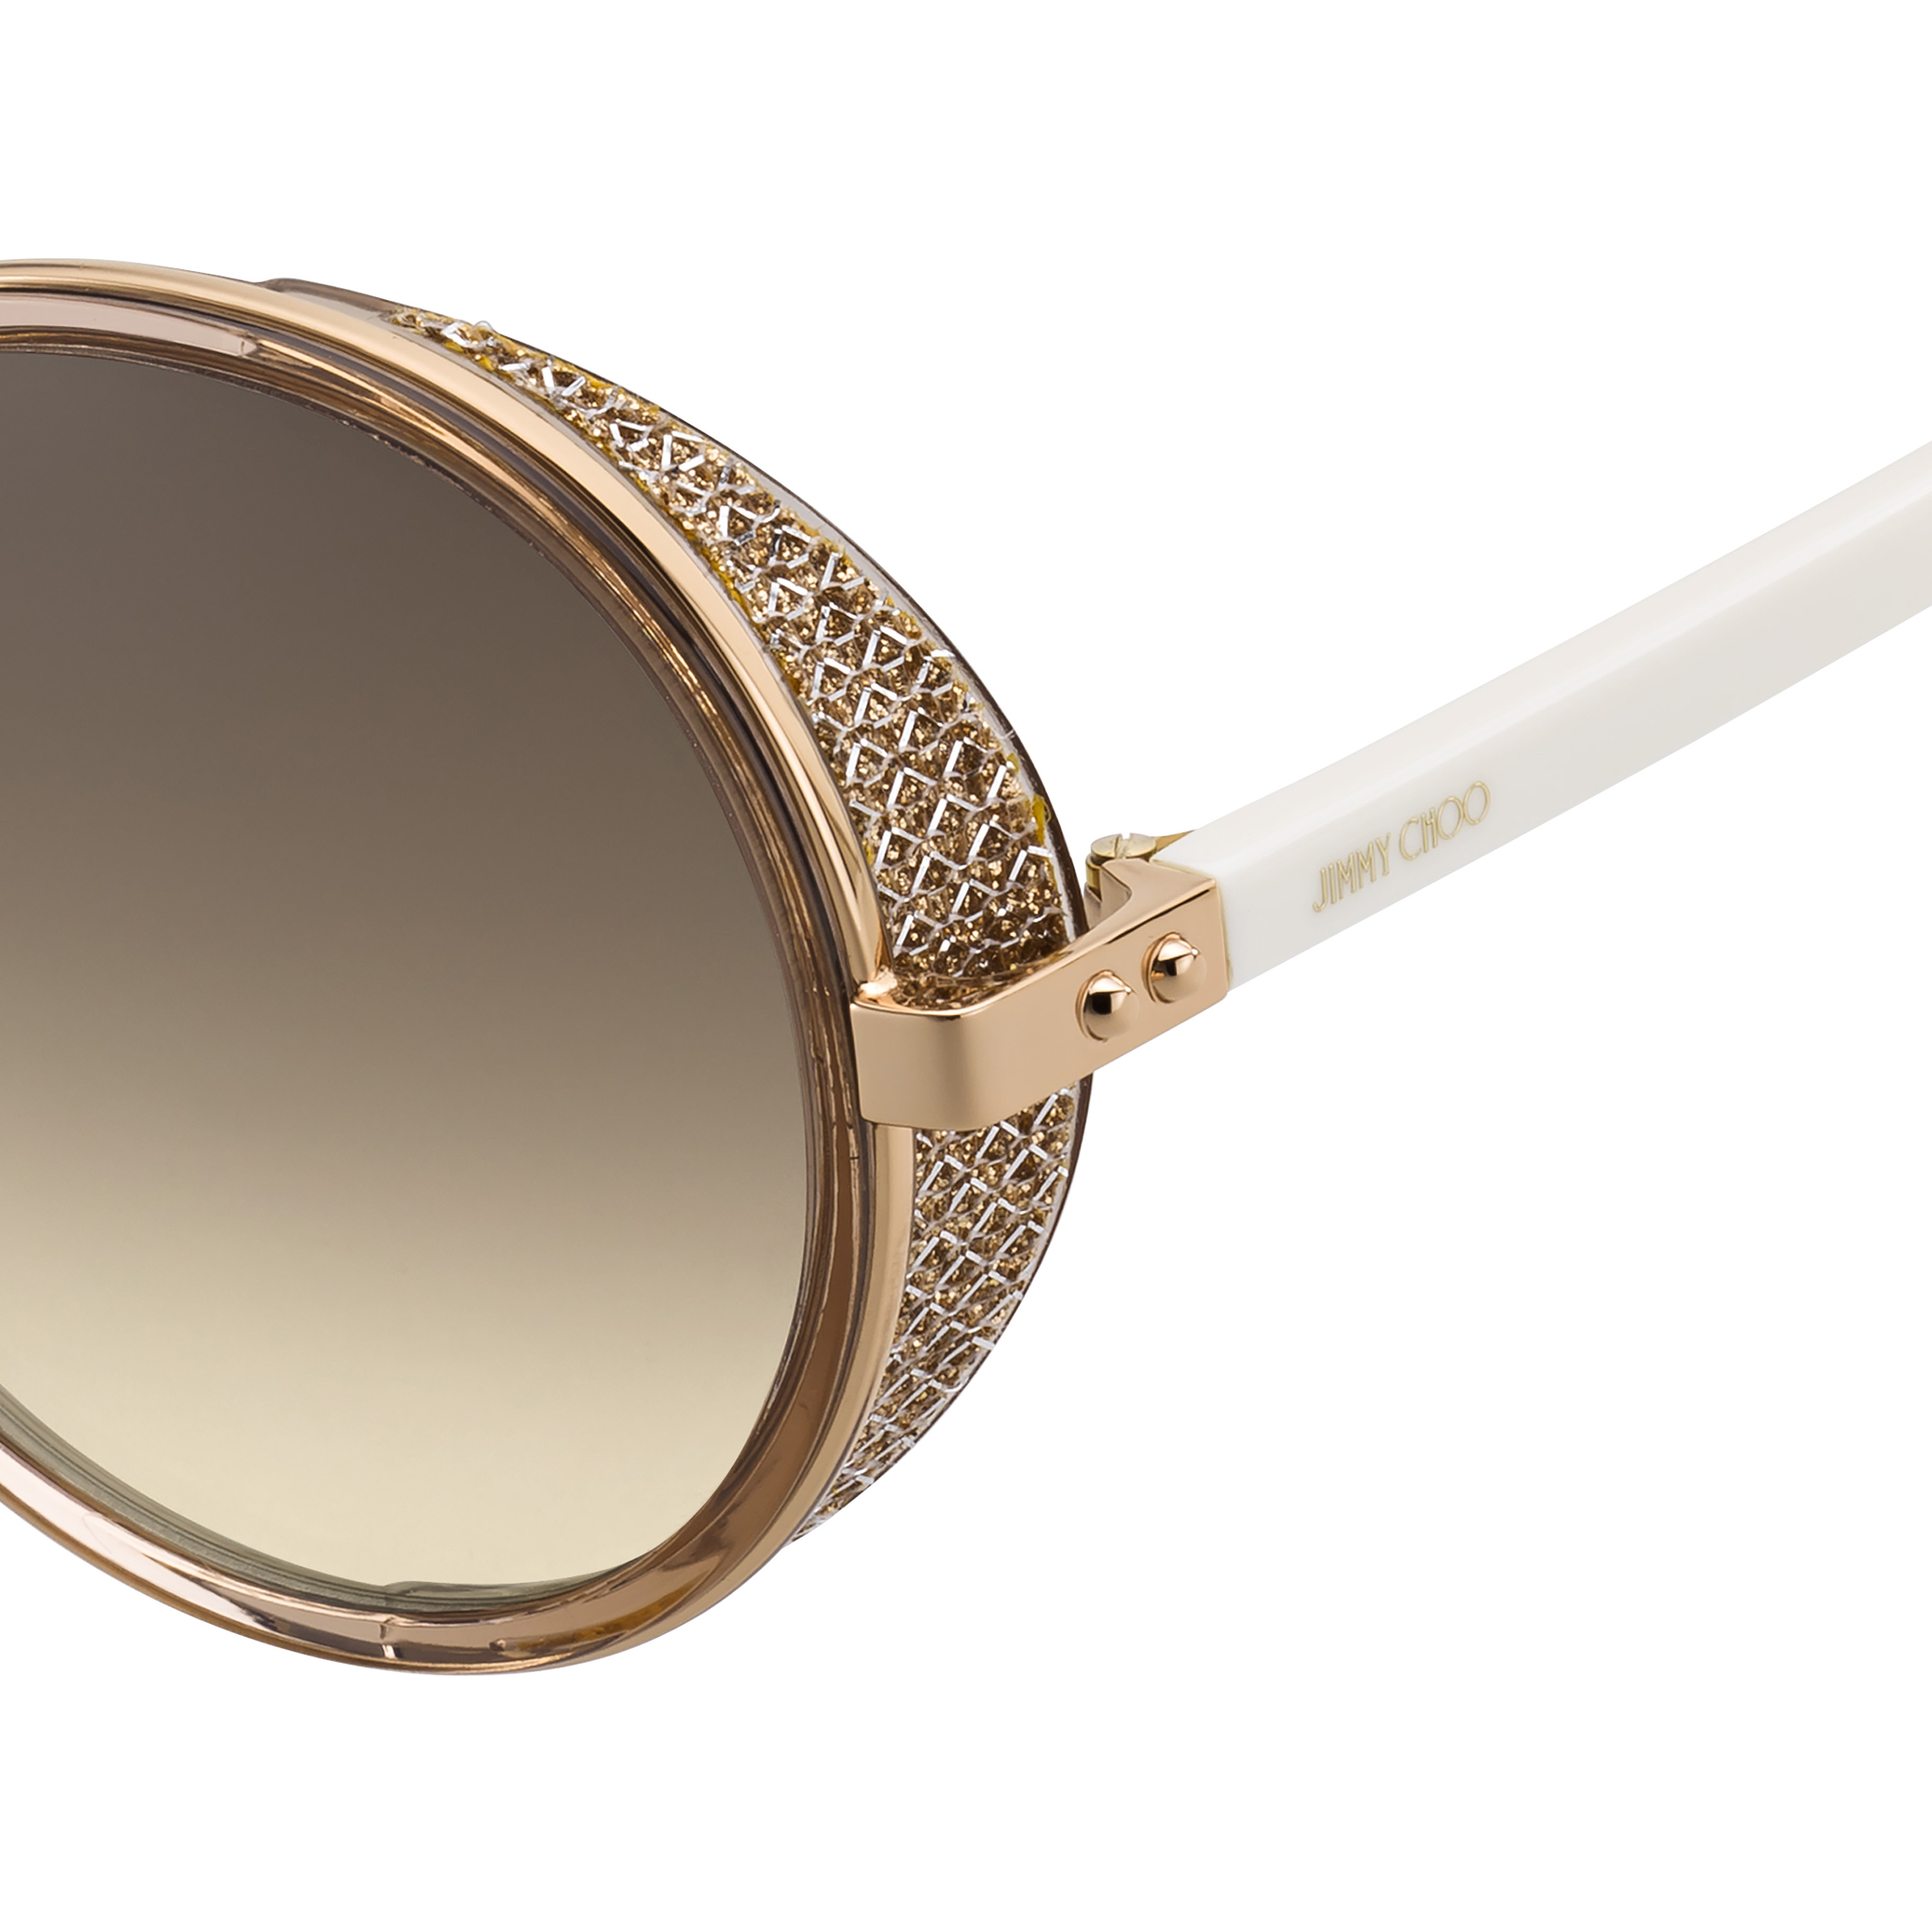 48c7017989f5 Shop Jimmy Choo sunglasses - Andie - My SunglassBoutique